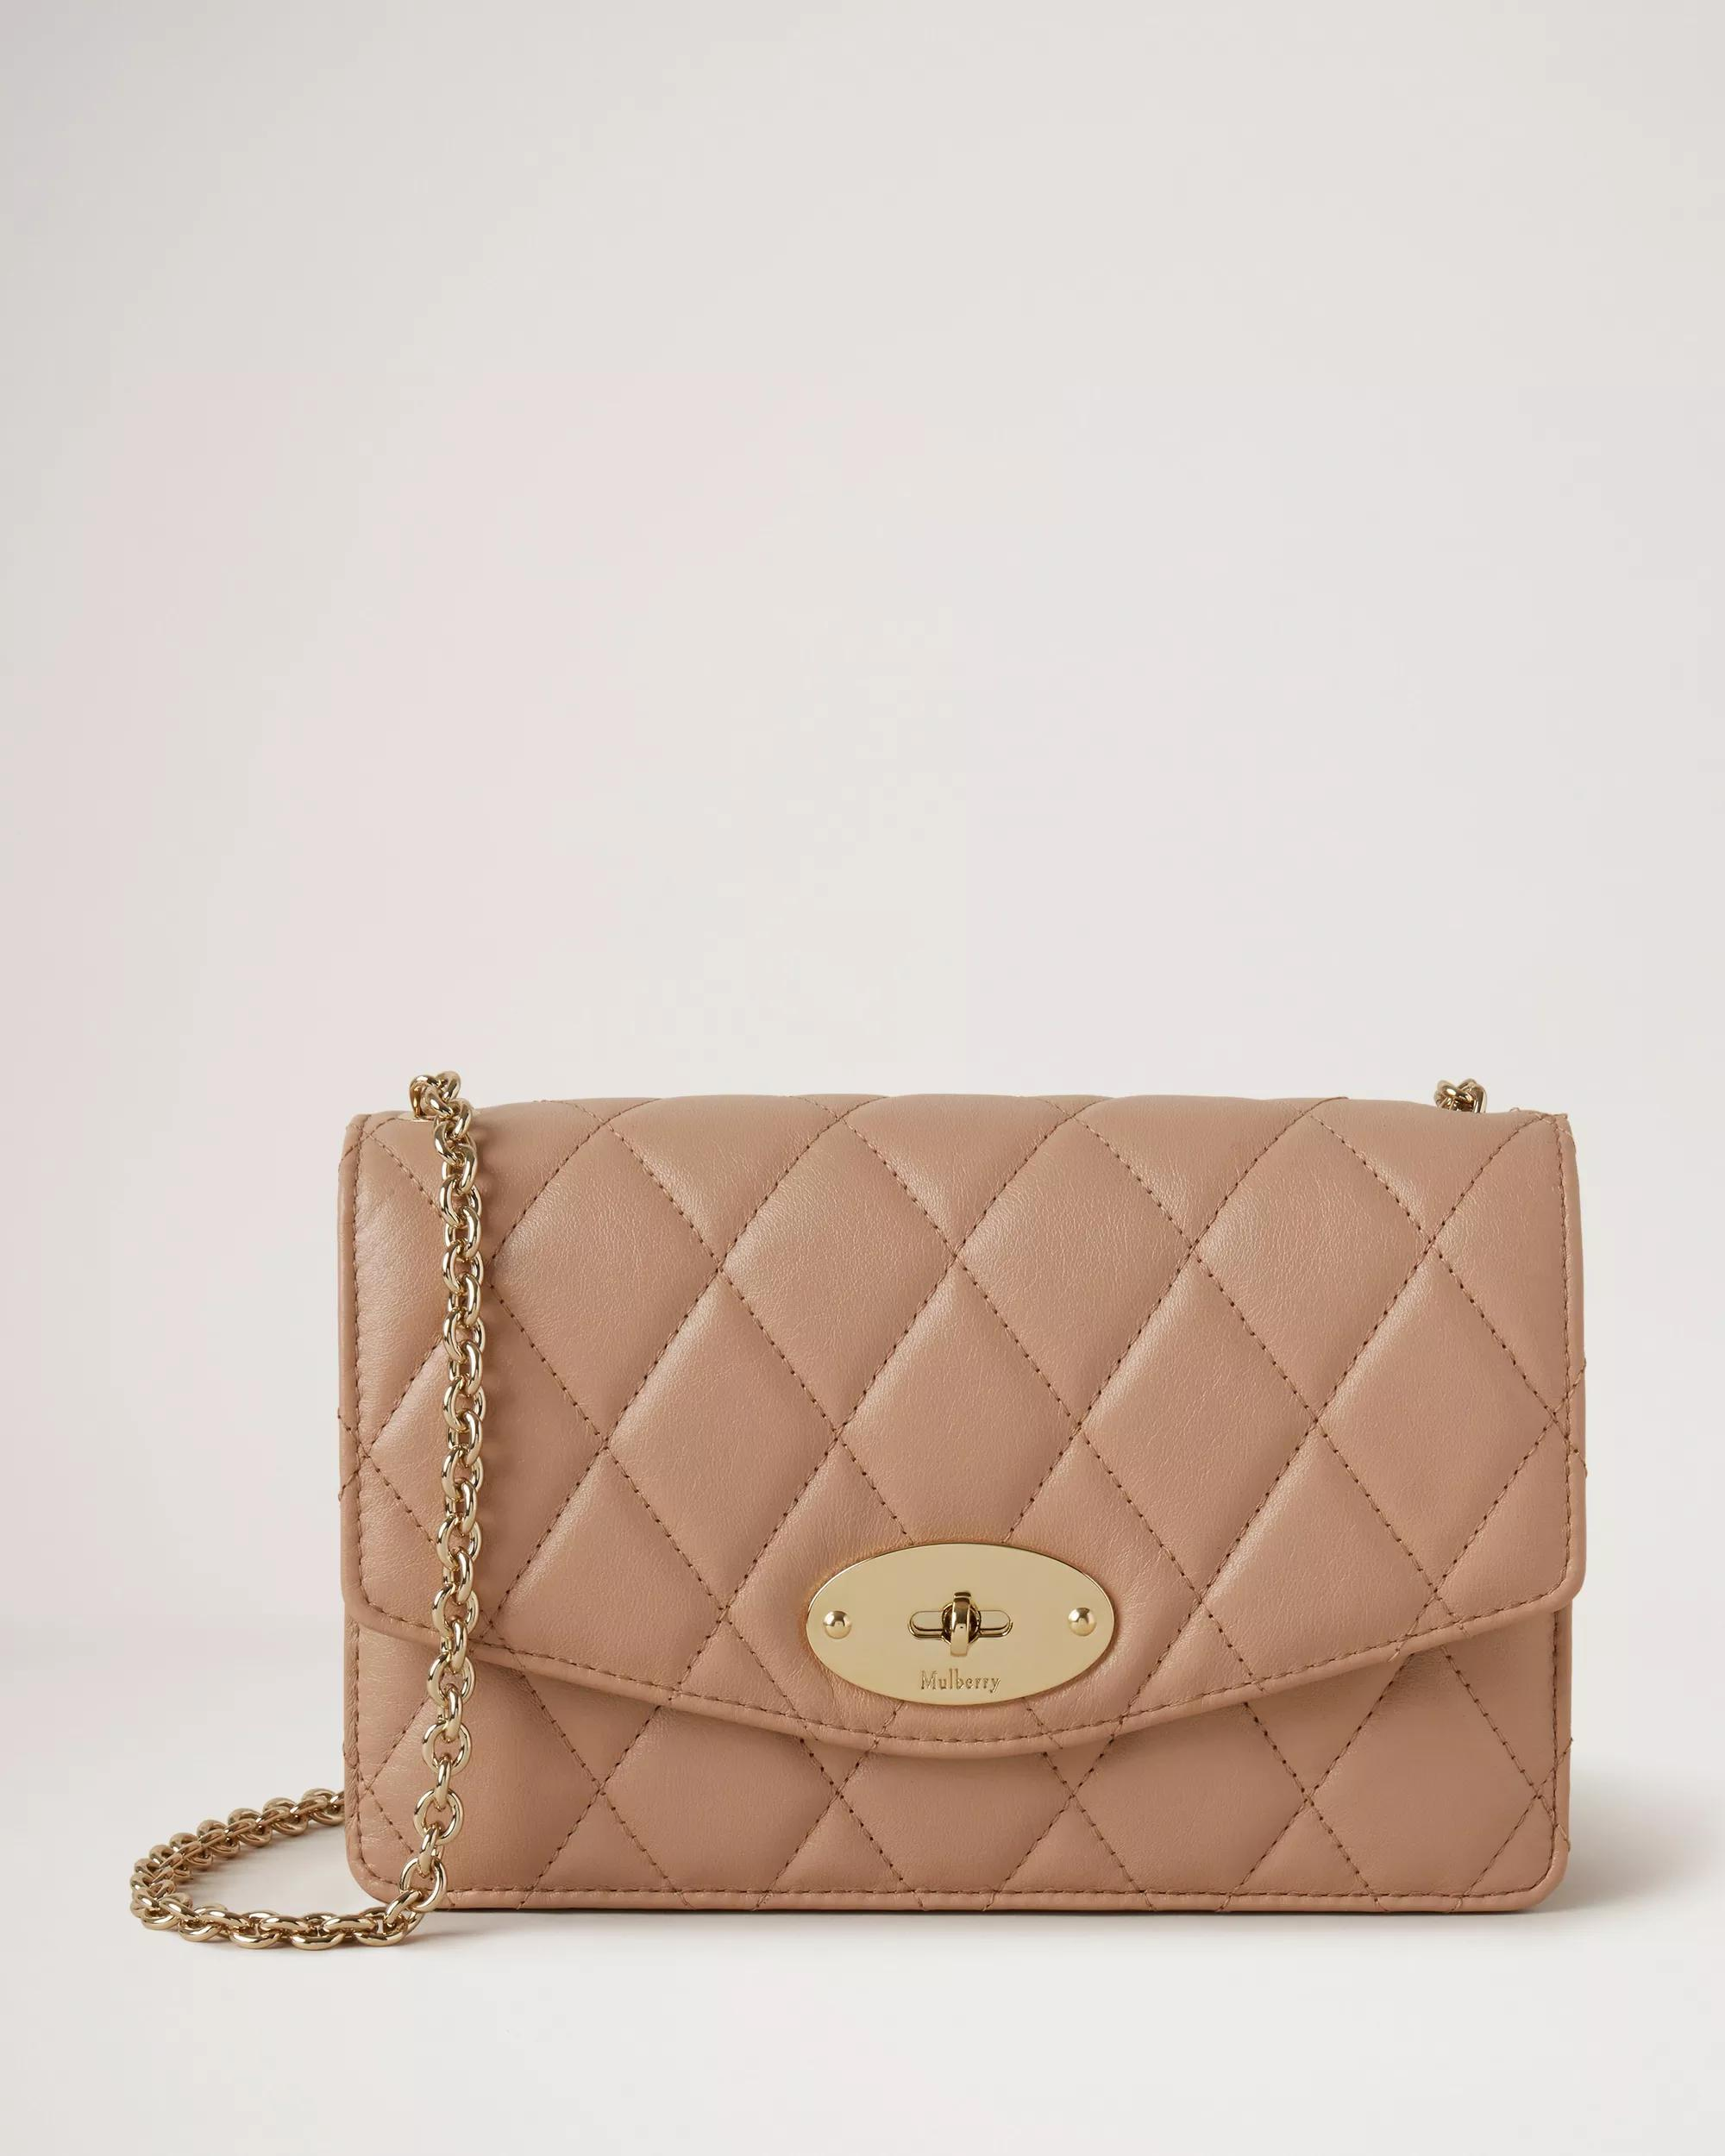 Small Darley with Leather & Chain Strap